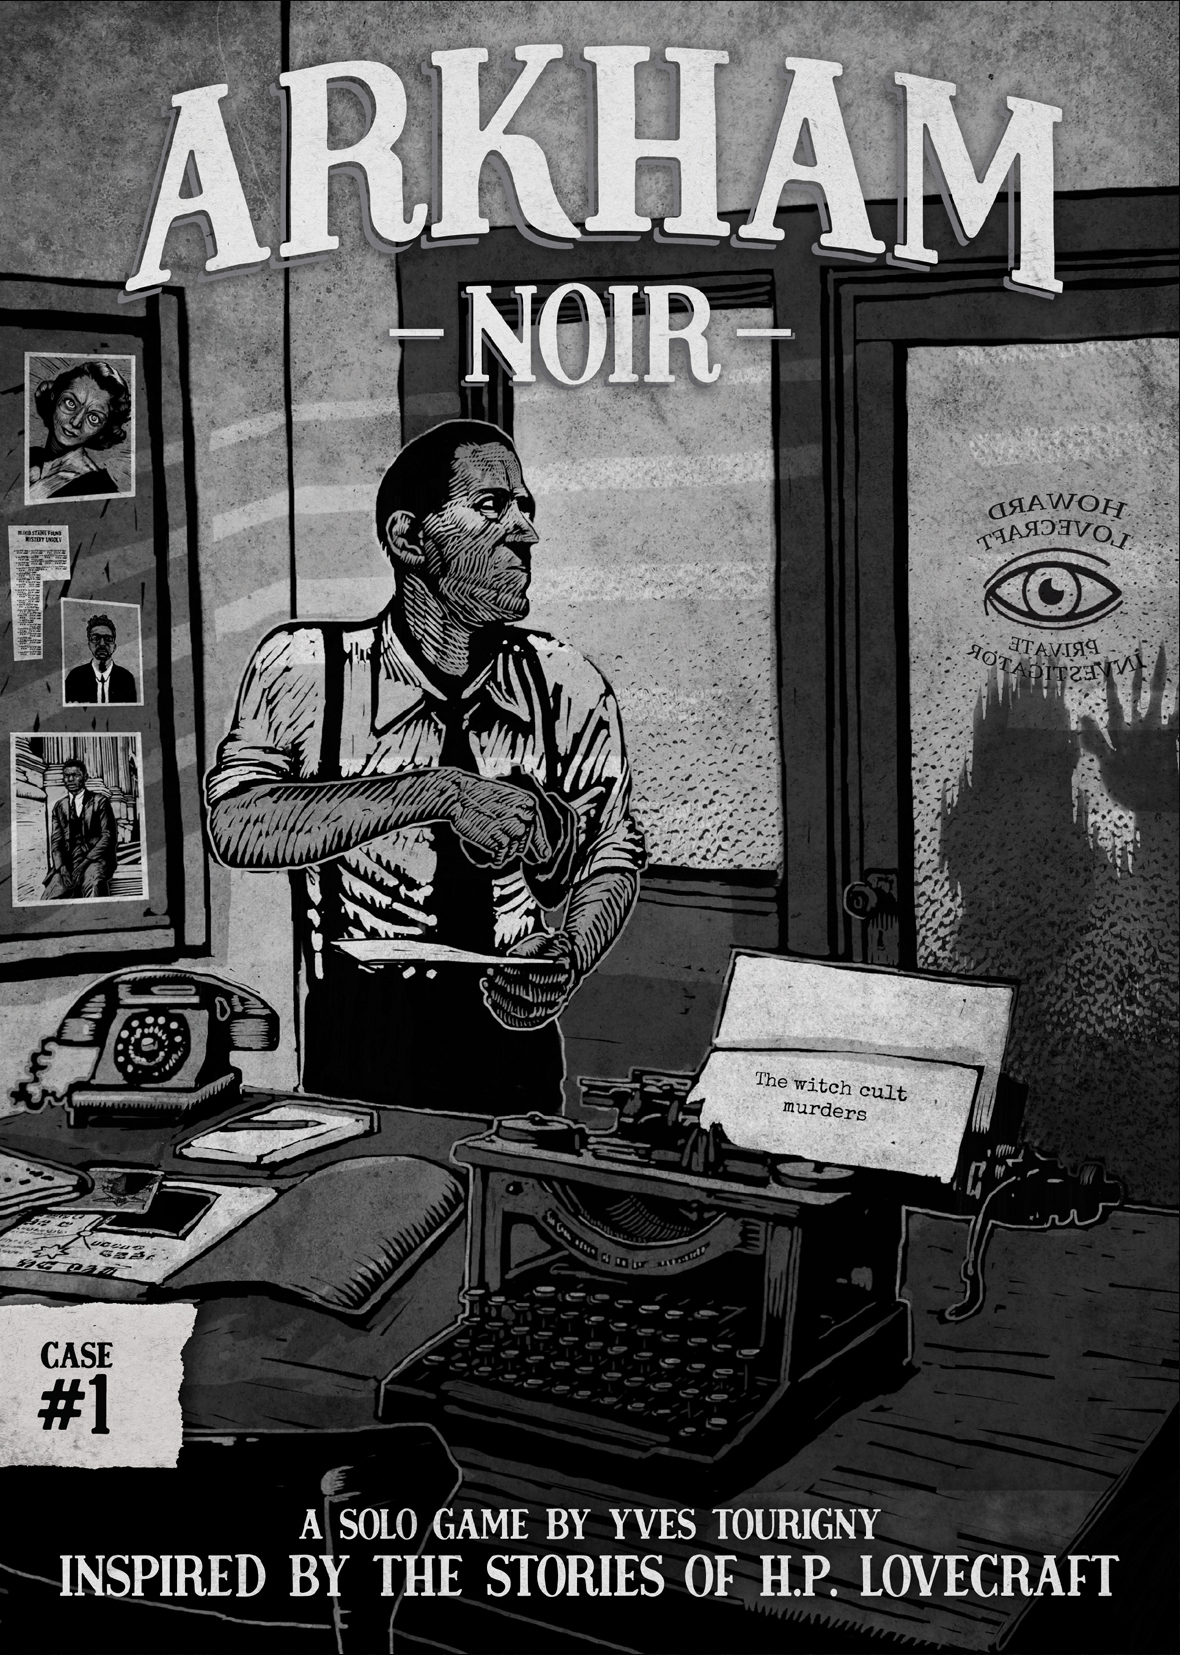 'Arkham Noir' game cover (Ludonova, 2107)